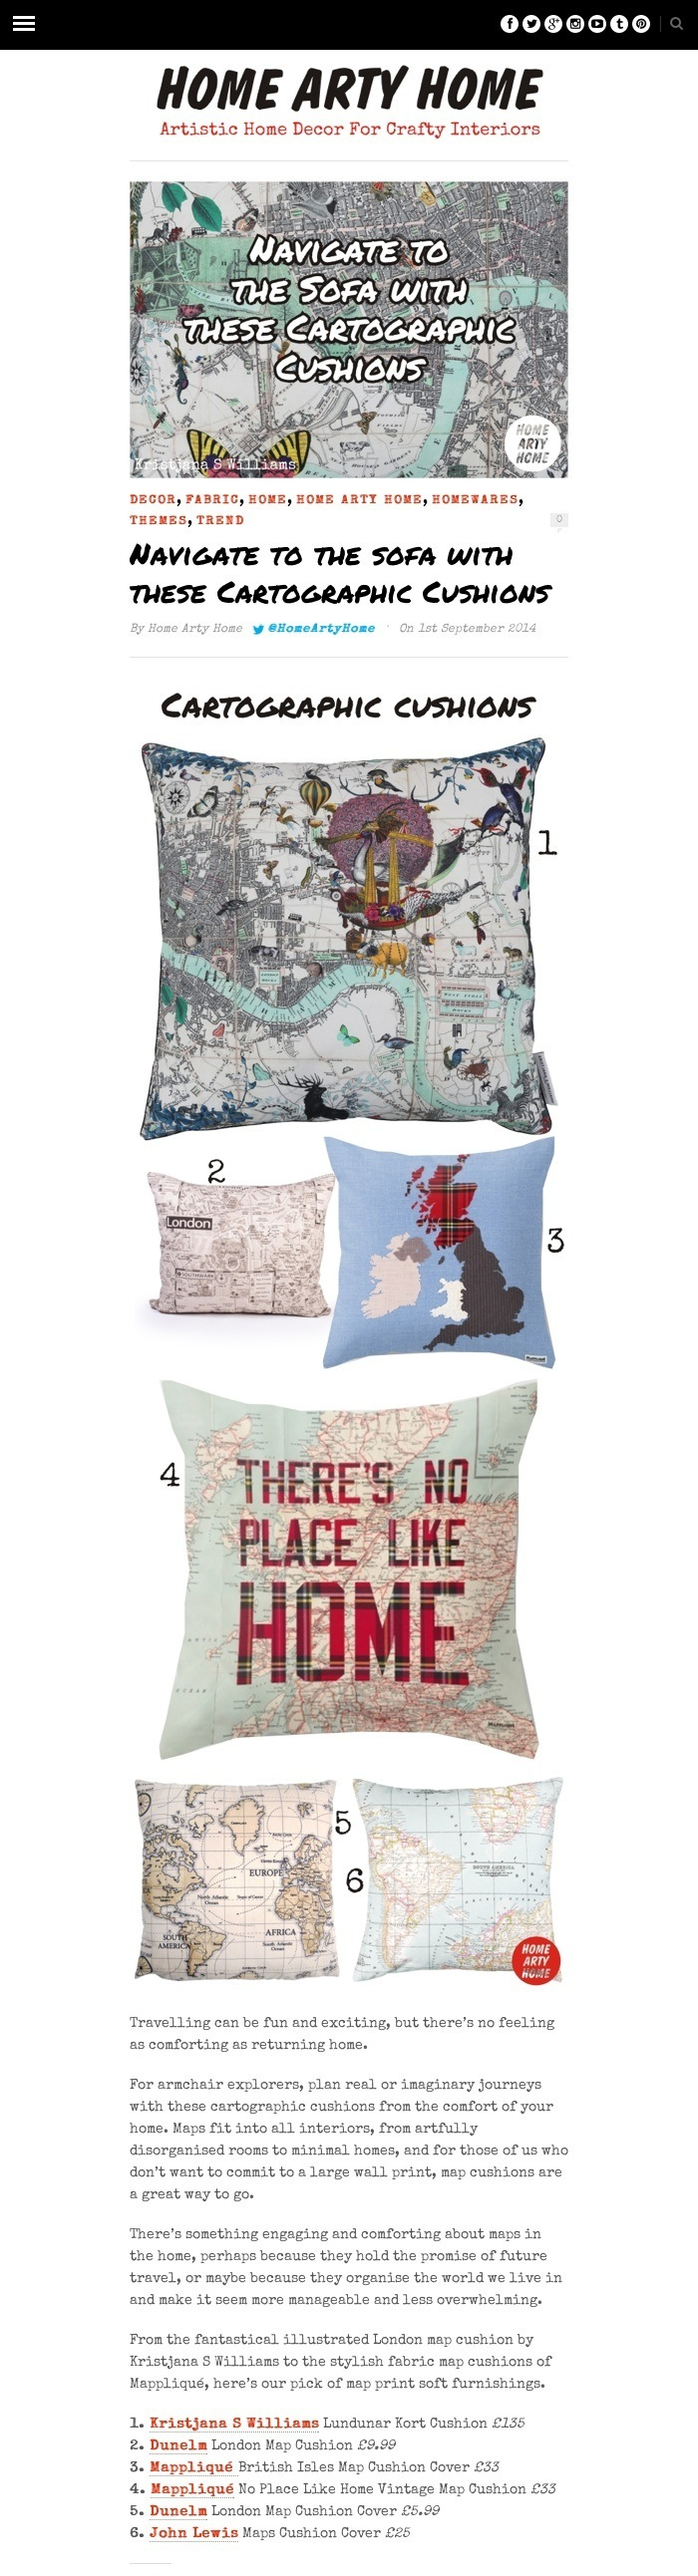 Navigate to the sofa with these Cartographic Cushions -Home Arty Home